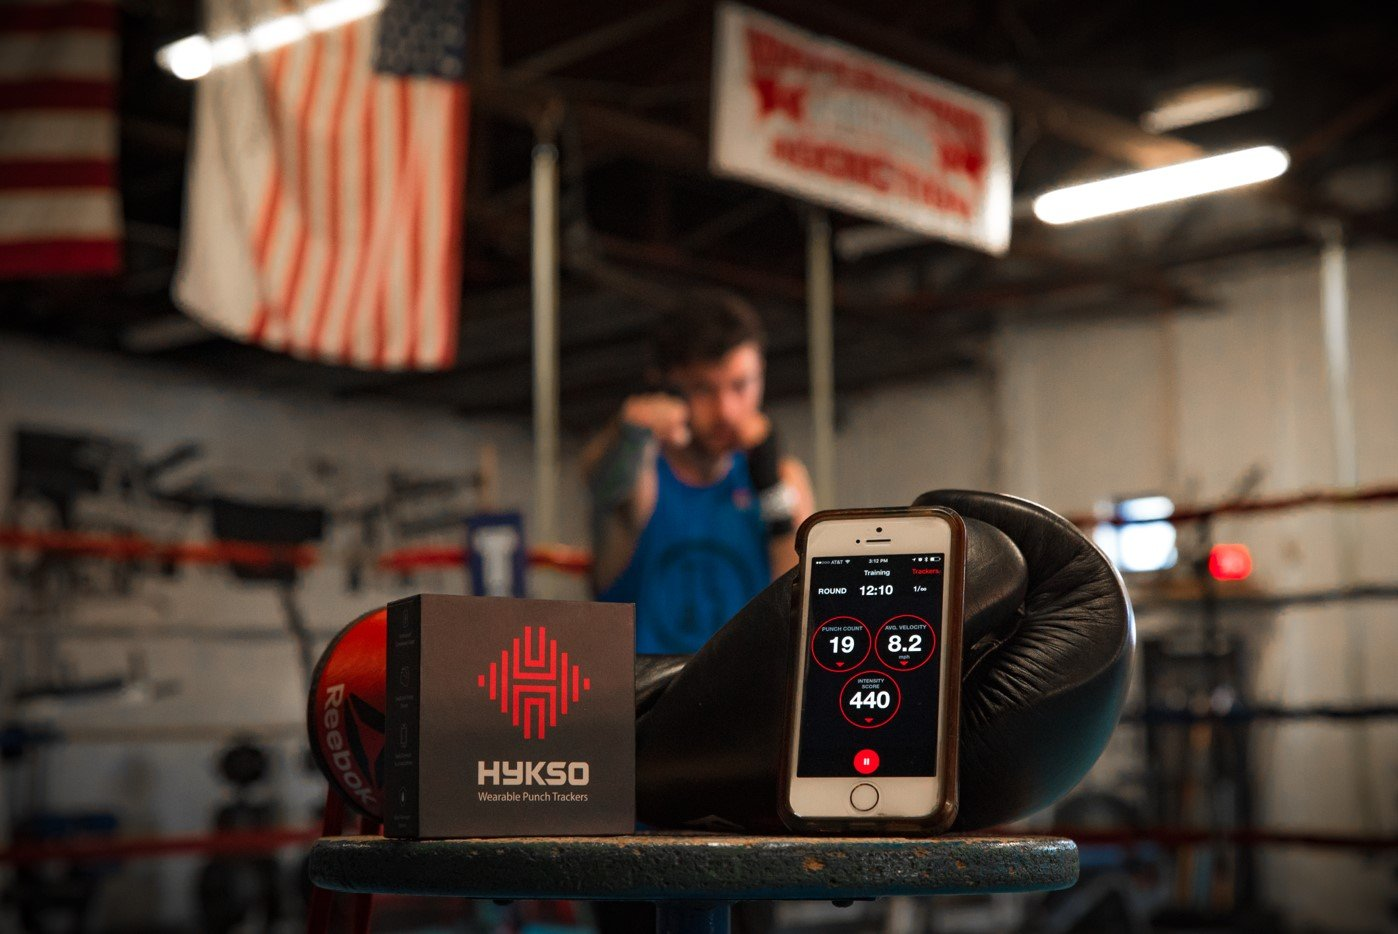 Boxing, Martial Arts & Mma Sporting Hykso Wearable Punch Tracker Sporting Goods